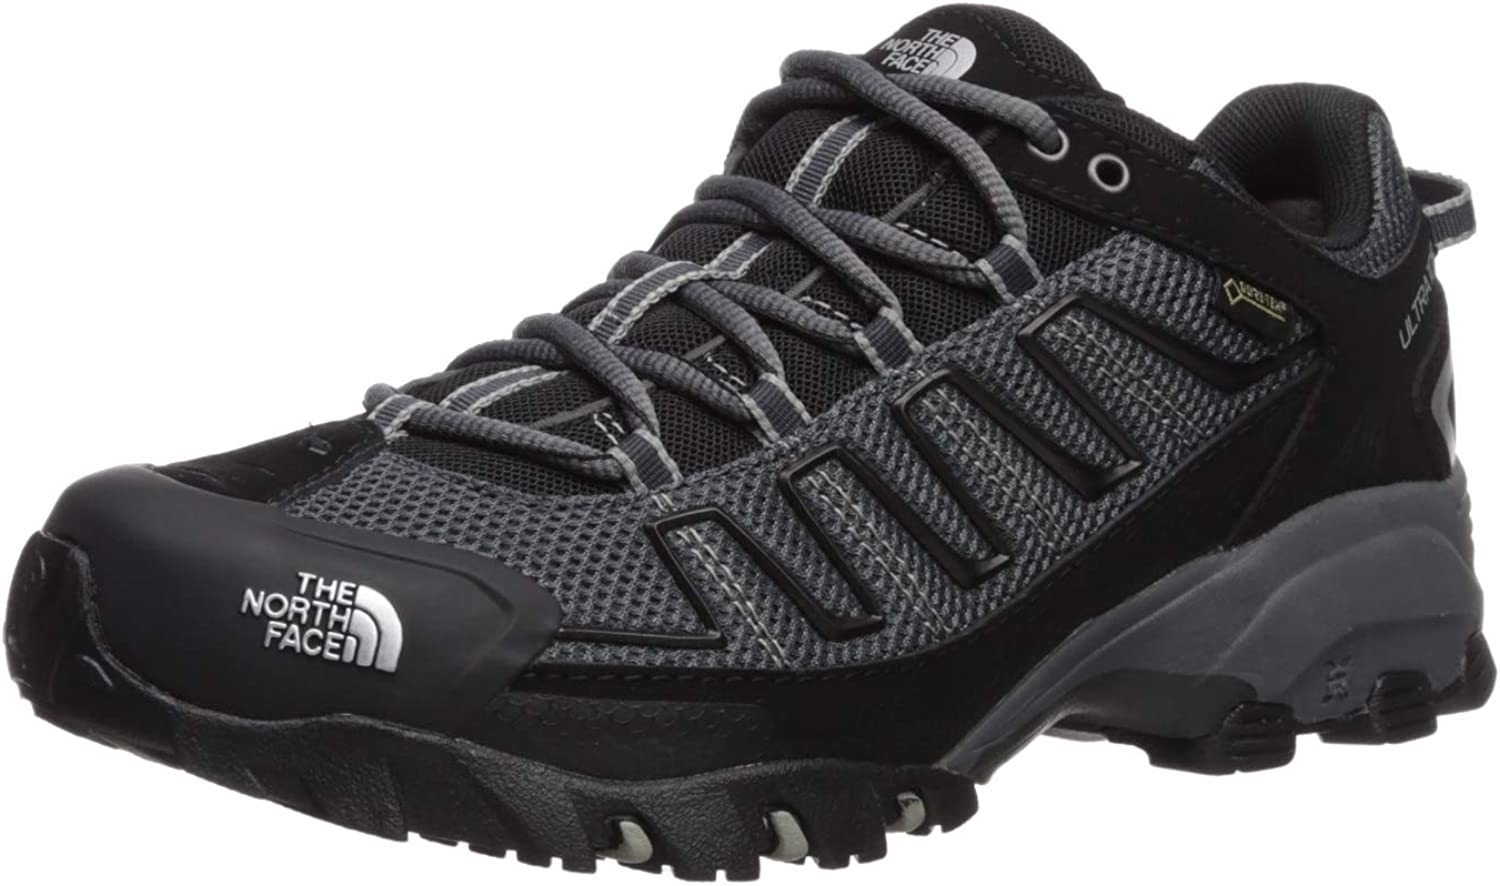 Men's The North Face Ultra 109 GTX Trail Running shoes TNF Black Dark Shadow Grey Size 11 M US